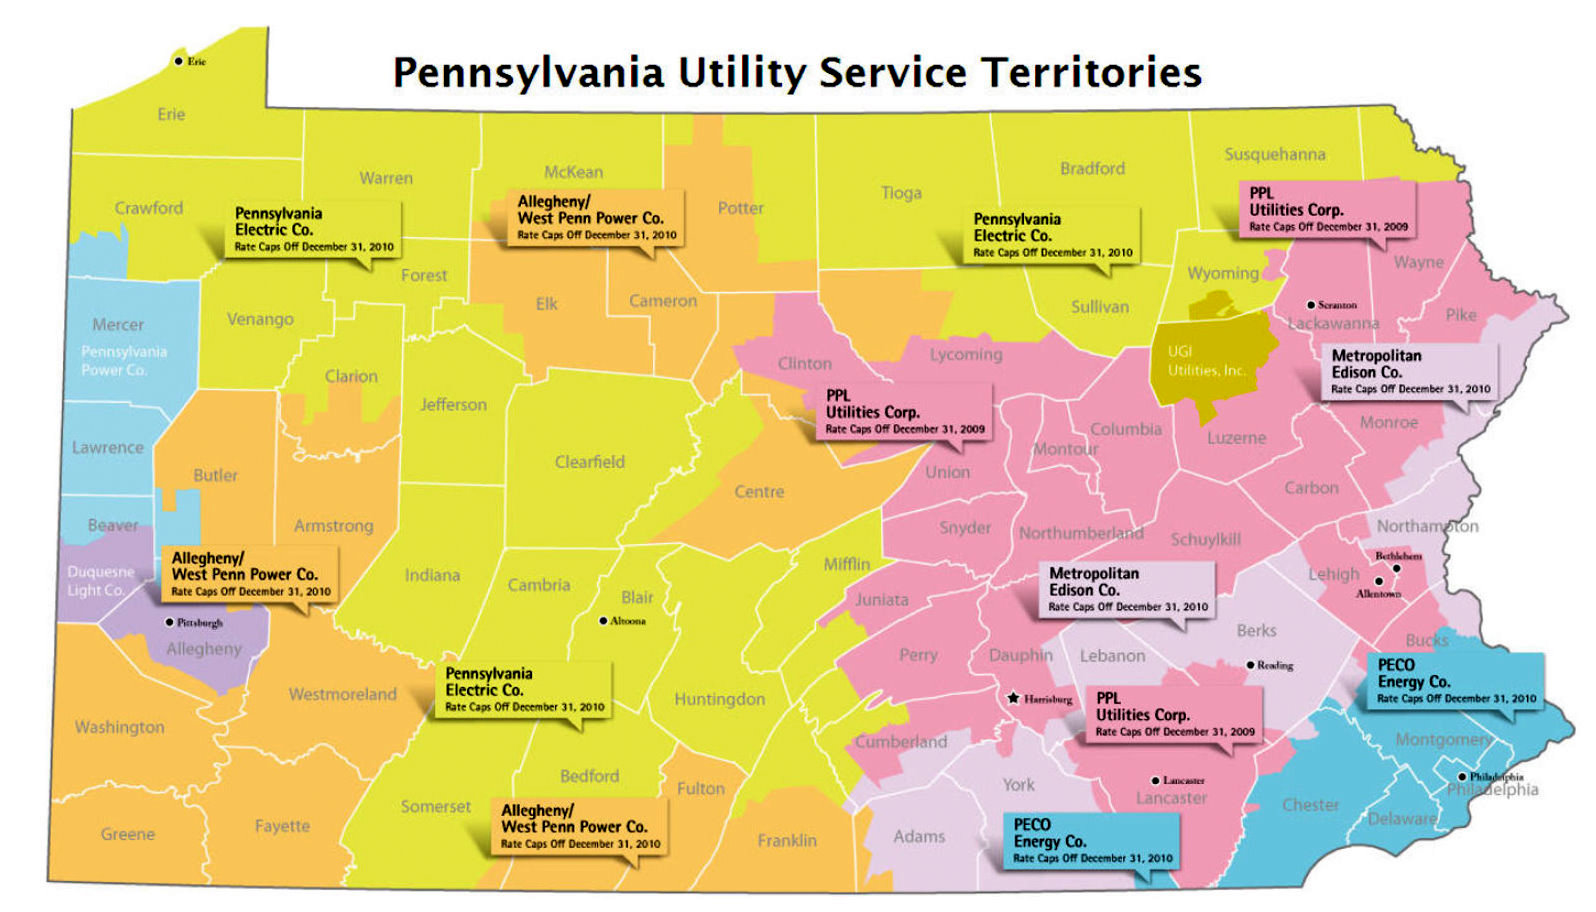 Pennsylvania Clean Energy Market Report - Map of utility service territories us